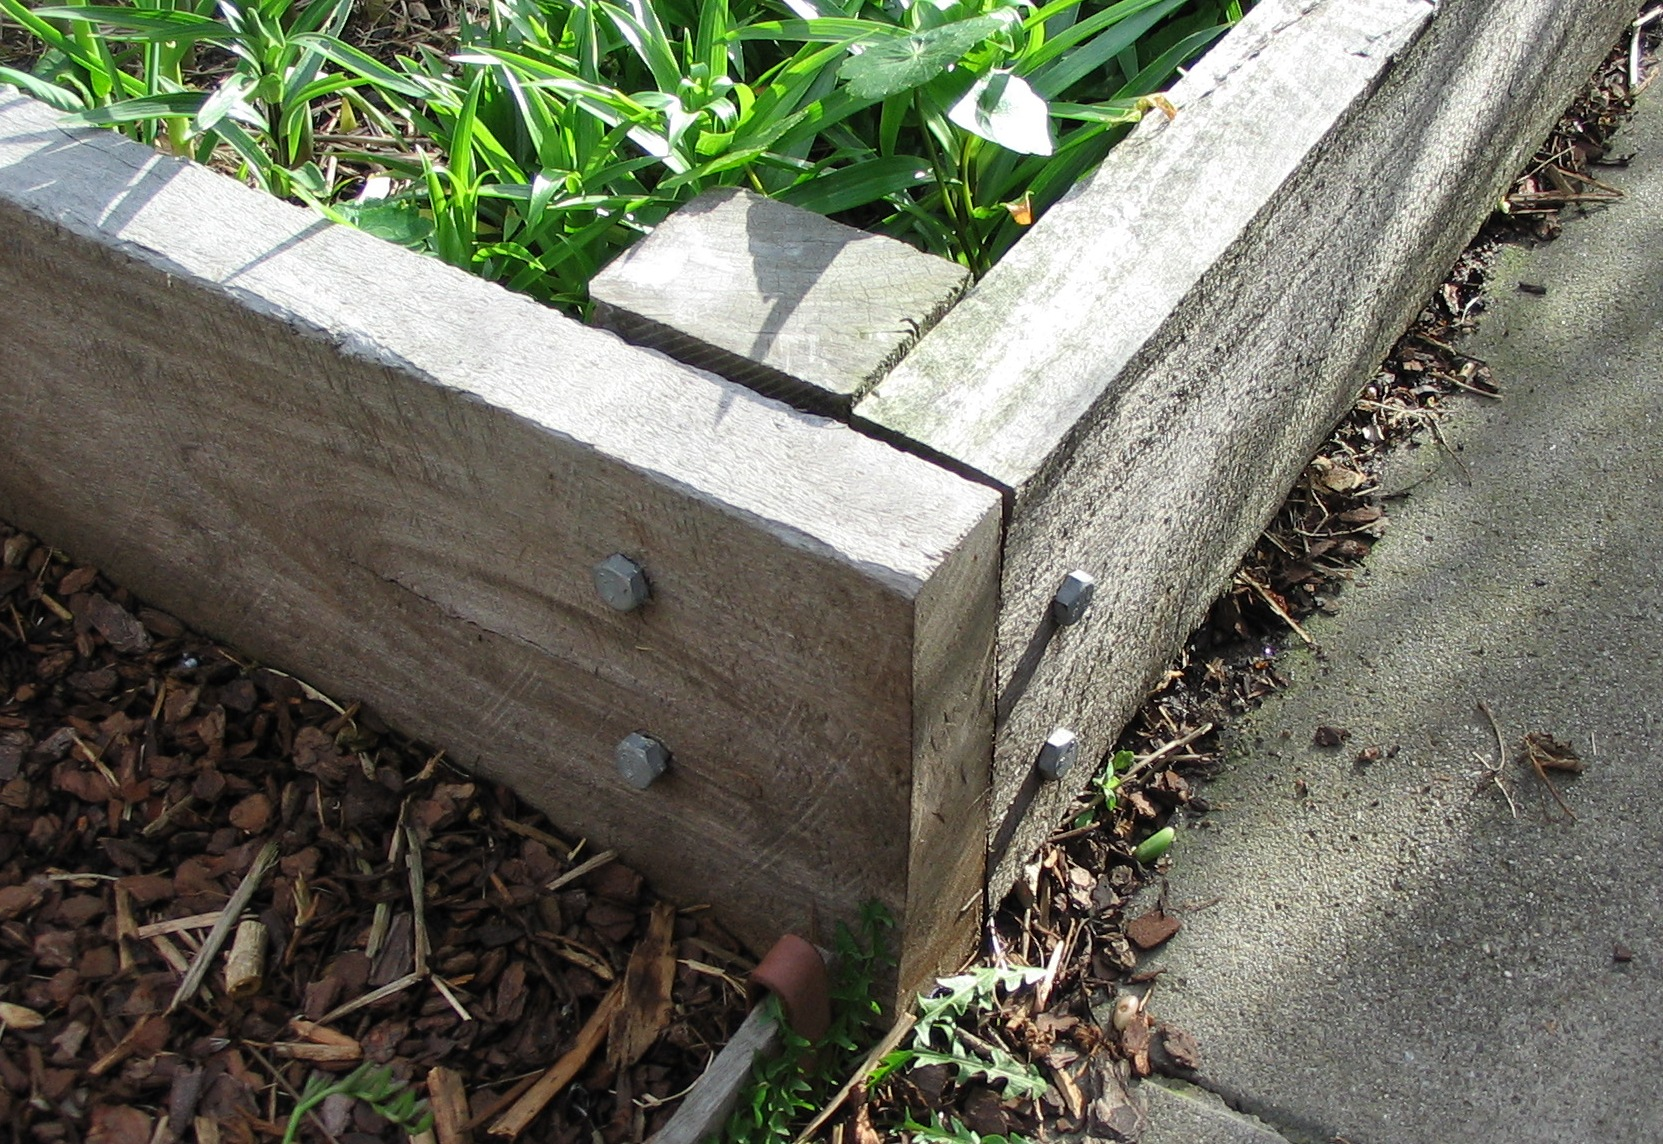 Railway Sleepers Attacked To A Corner Post With Coach Screws